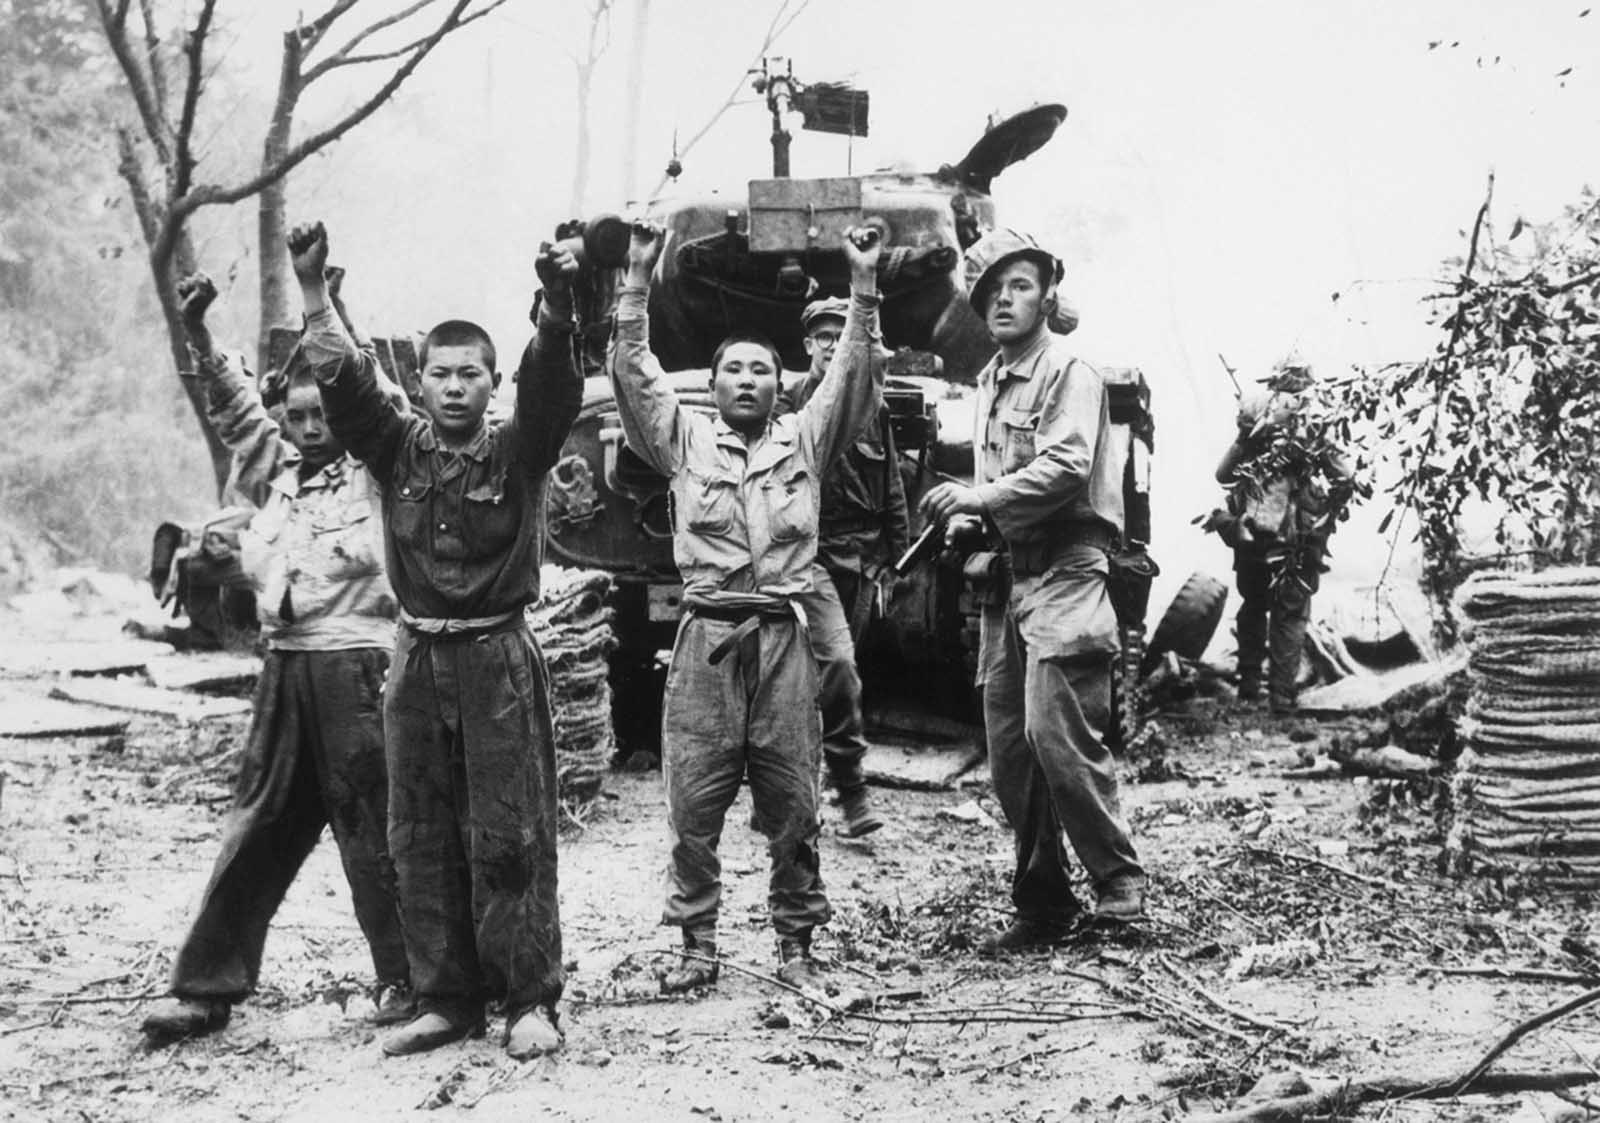 A U.S. Marine (right) orders captured North Koreans to keep their hands up on September 20, 1950. In the background is one of the tanks which came ashore in the assault at Inchon.